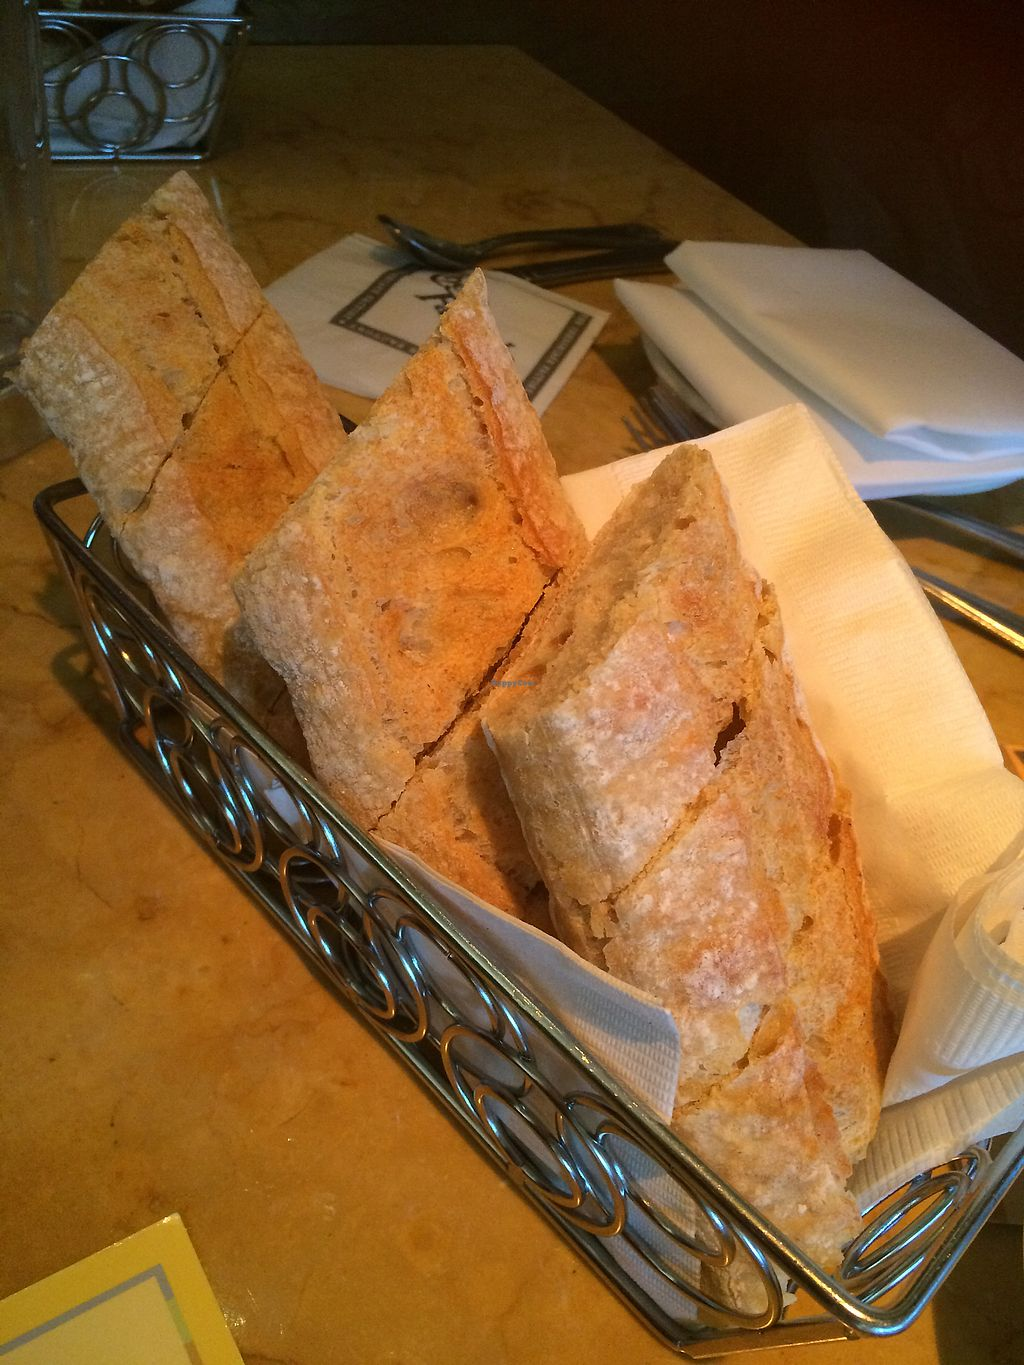 """Photo of The Cheesecake Factory  by <a href=""""/members/profile/fruitiJulie"""">fruitiJulie</a> <br/>French bread baguette  vegan <br/> November 21, 2017  - <a href='/contact/abuse/image/103994/327899'>Report</a>"""